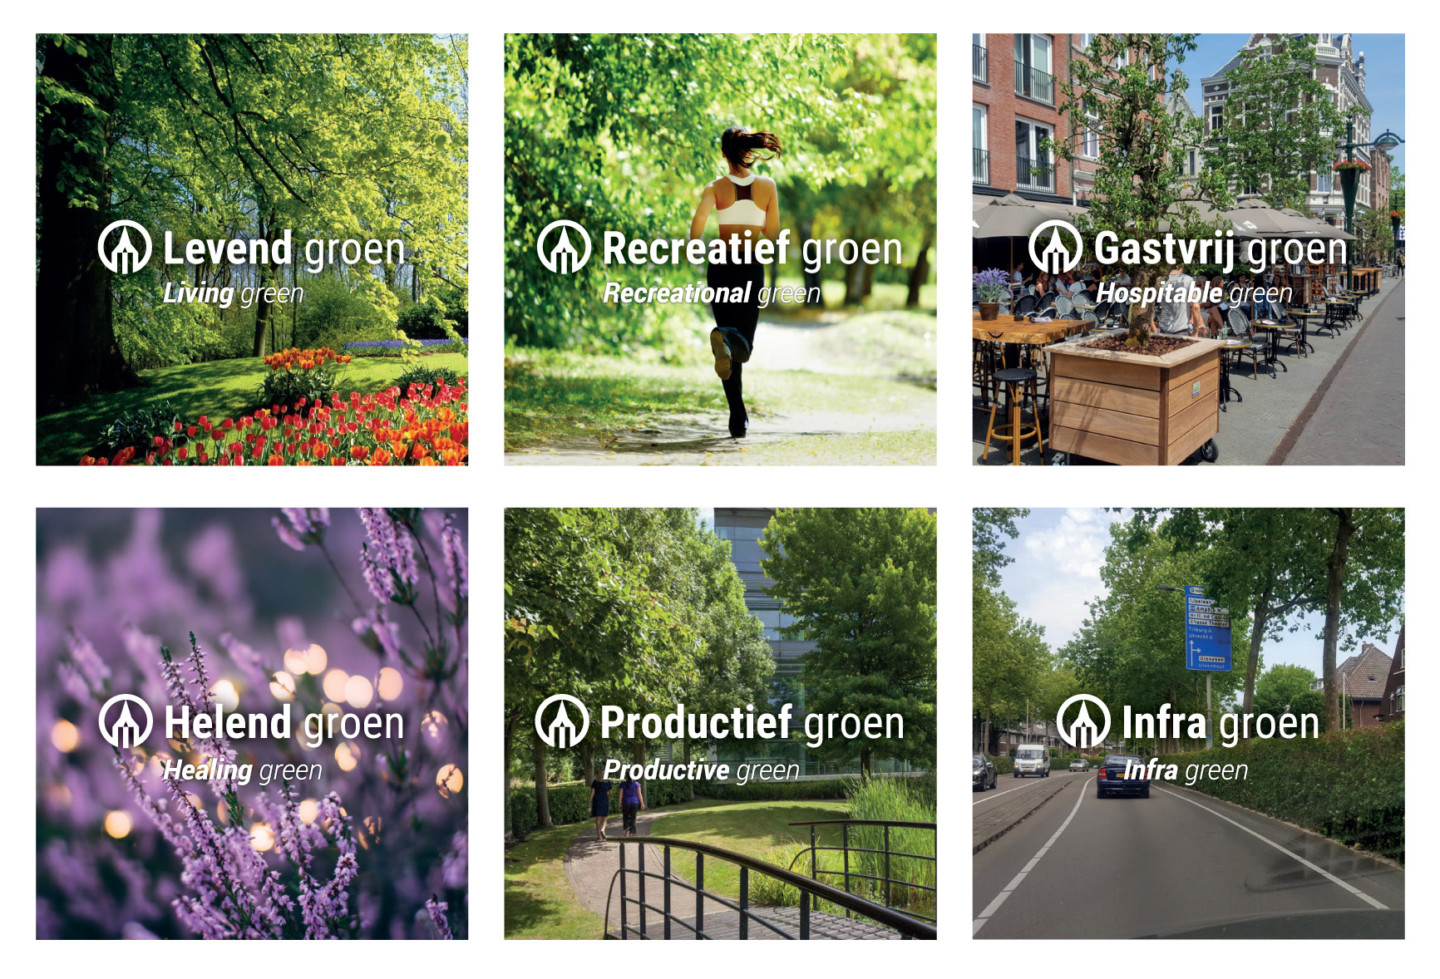 M. van den Oever | Green Life™ Program: The 6 new and sustainable green environments of tomorrow